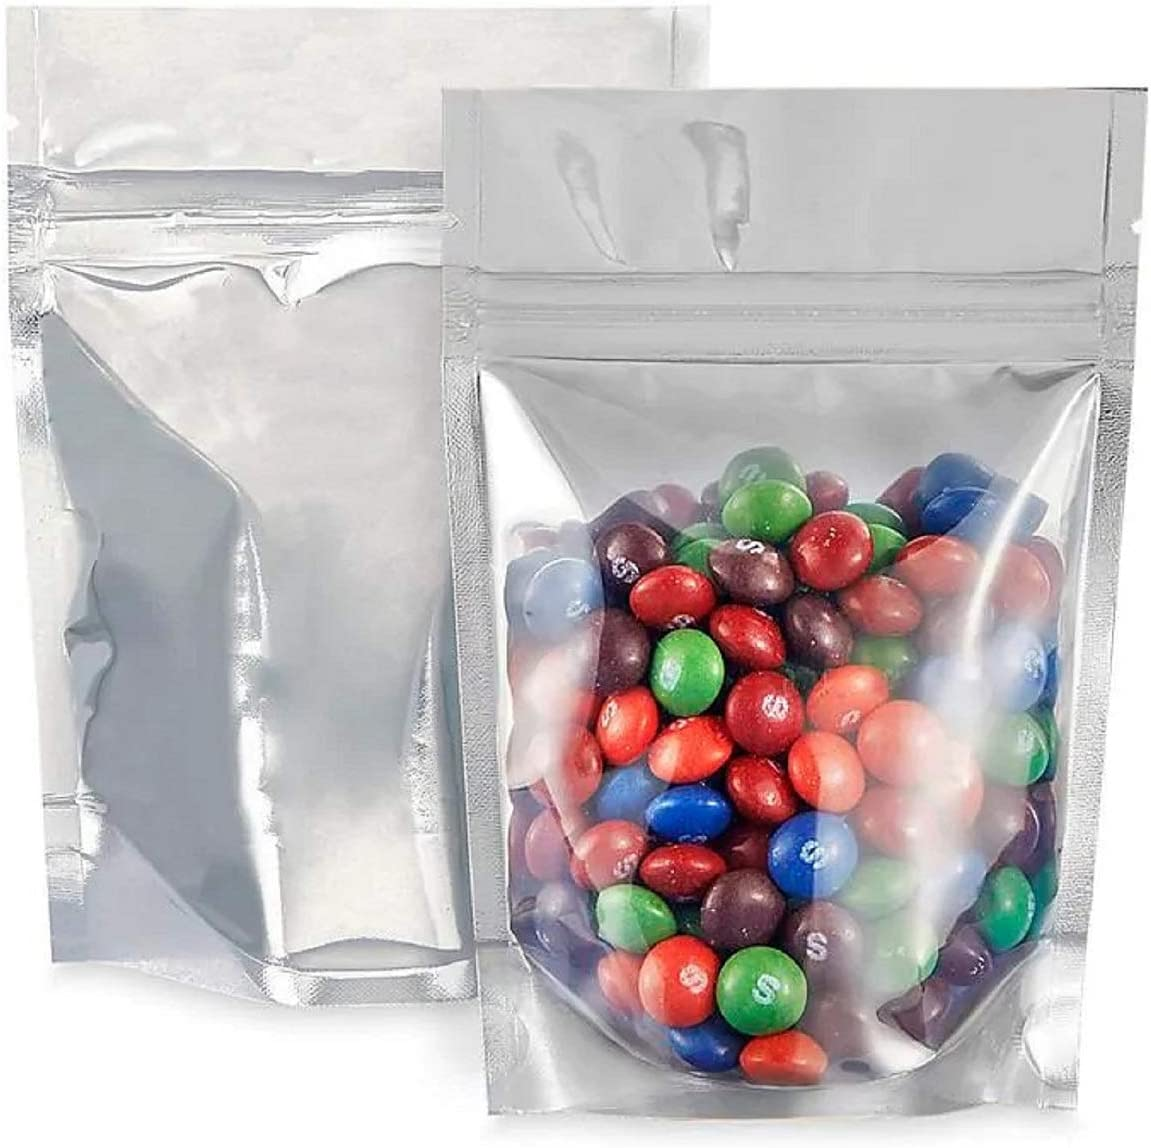 Reusable Smell Proof Bags   5x7 Stand Up Mylar Bags   Resealable Ziplock Aluminum Food Storage Bags for Candy, Coffee Beans, Rice, Jewelry, ect with Tear Notches (50 Count)